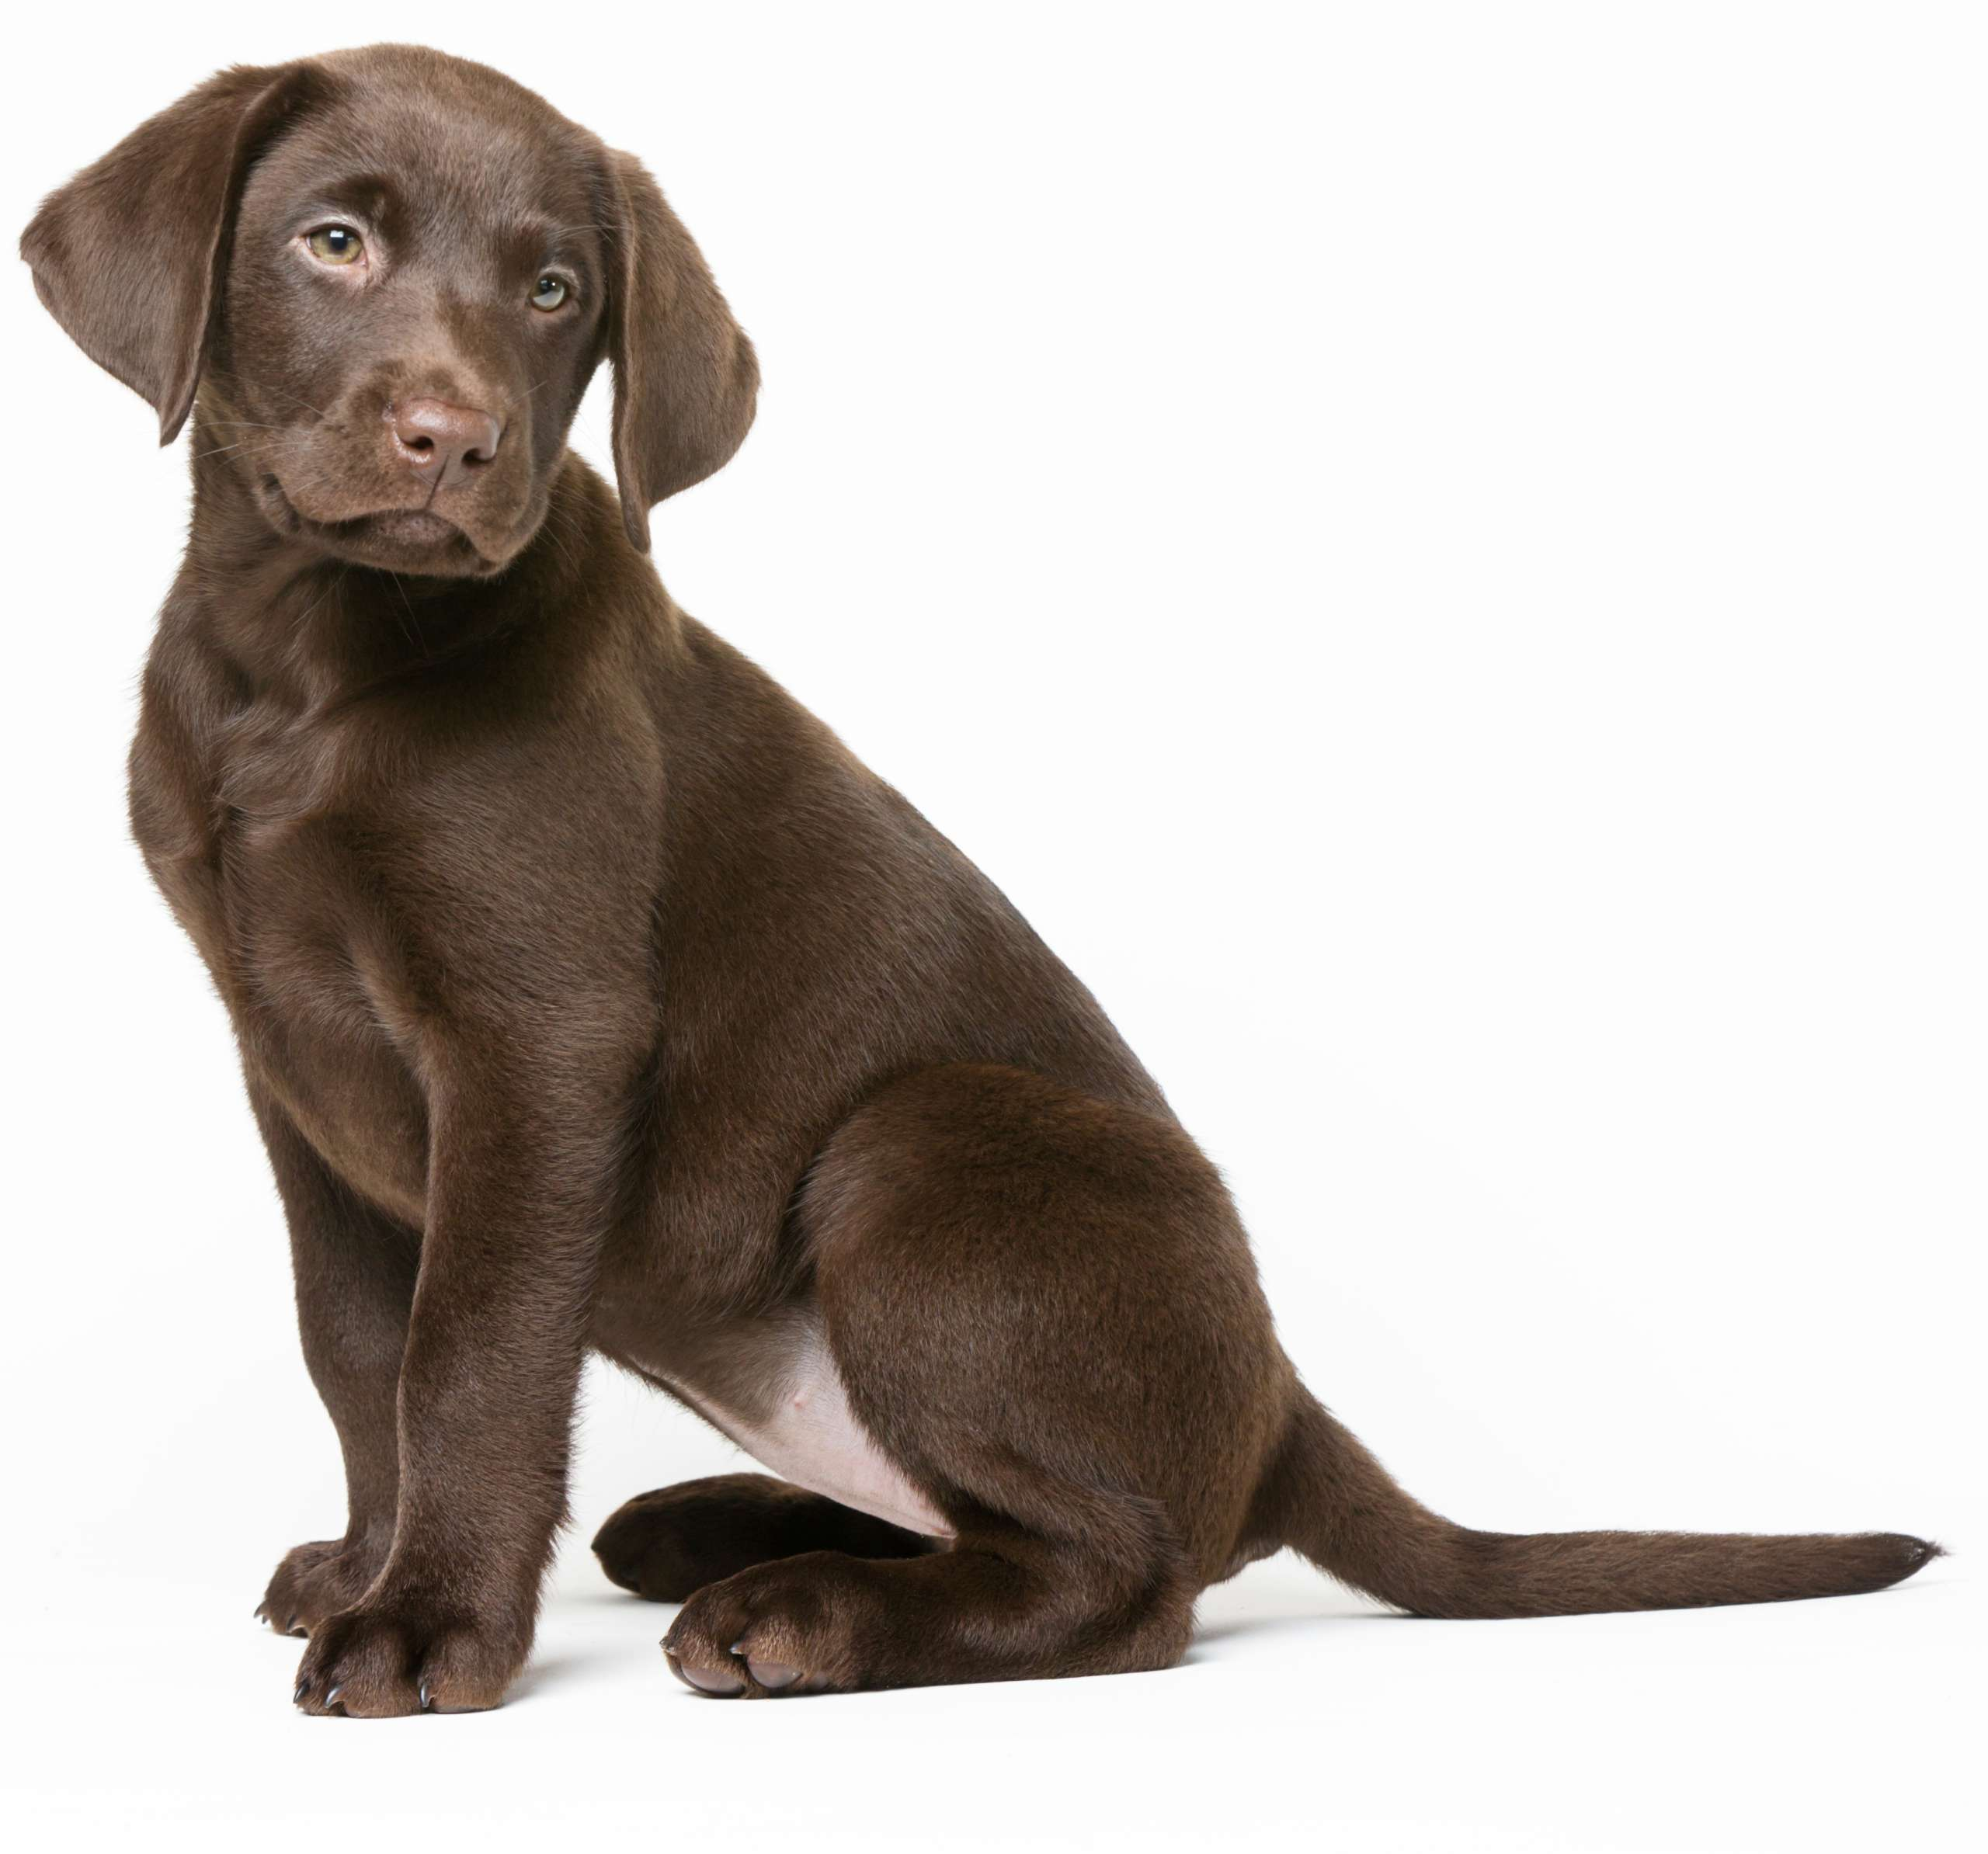 An image of a chocolate lab puppy dog